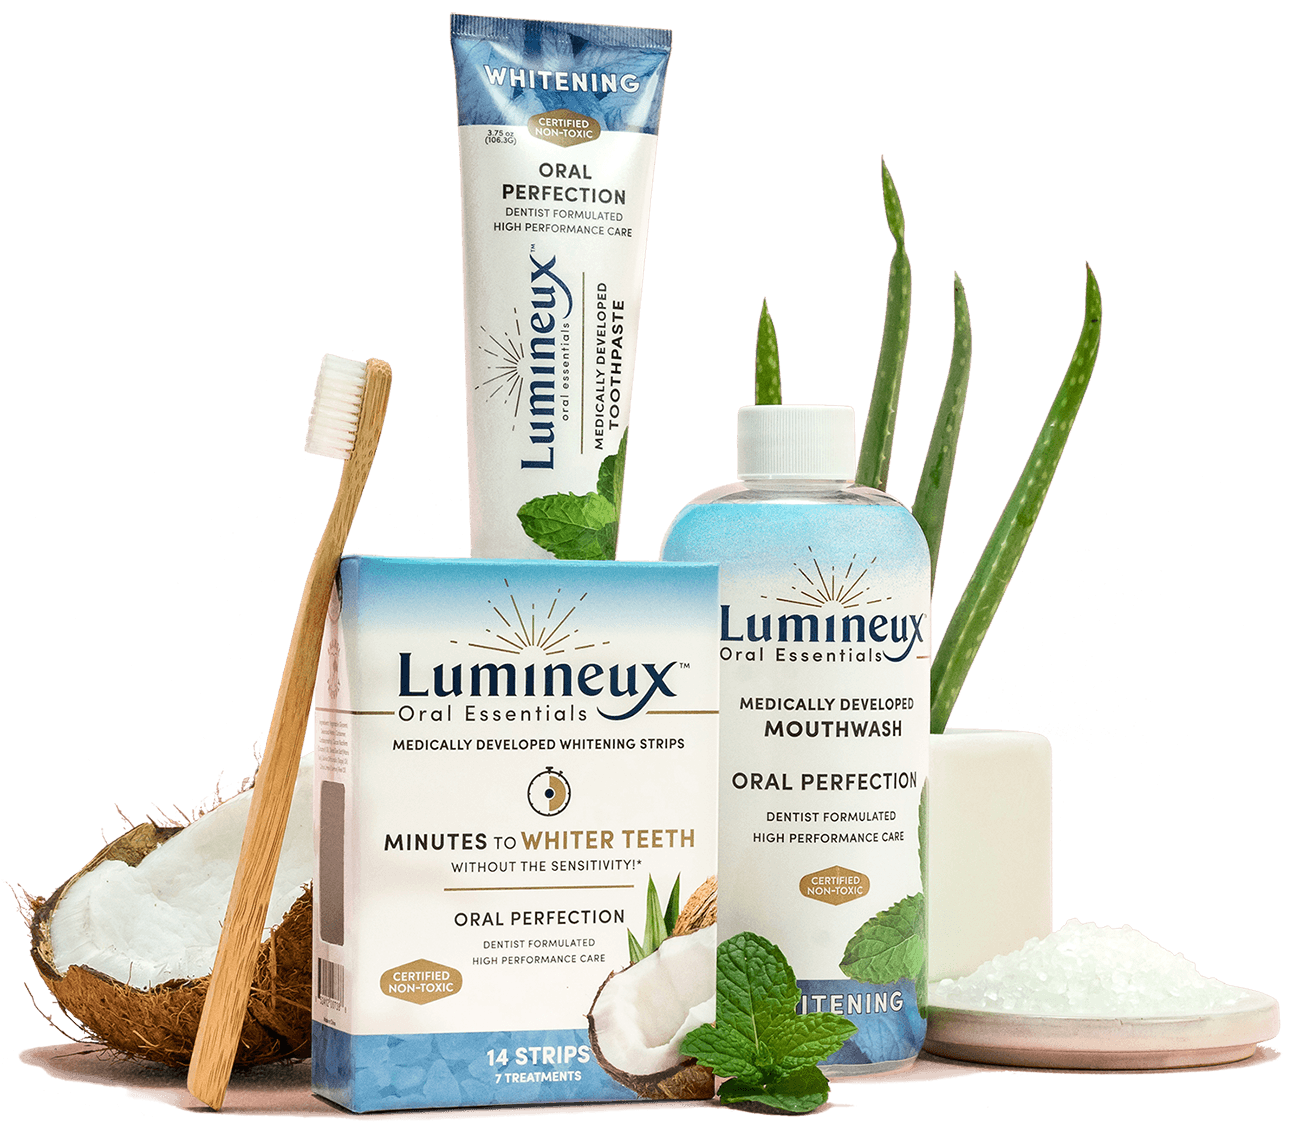 Lumineux Oral Essentials Naturally Confident Lumineux Oral Essentials